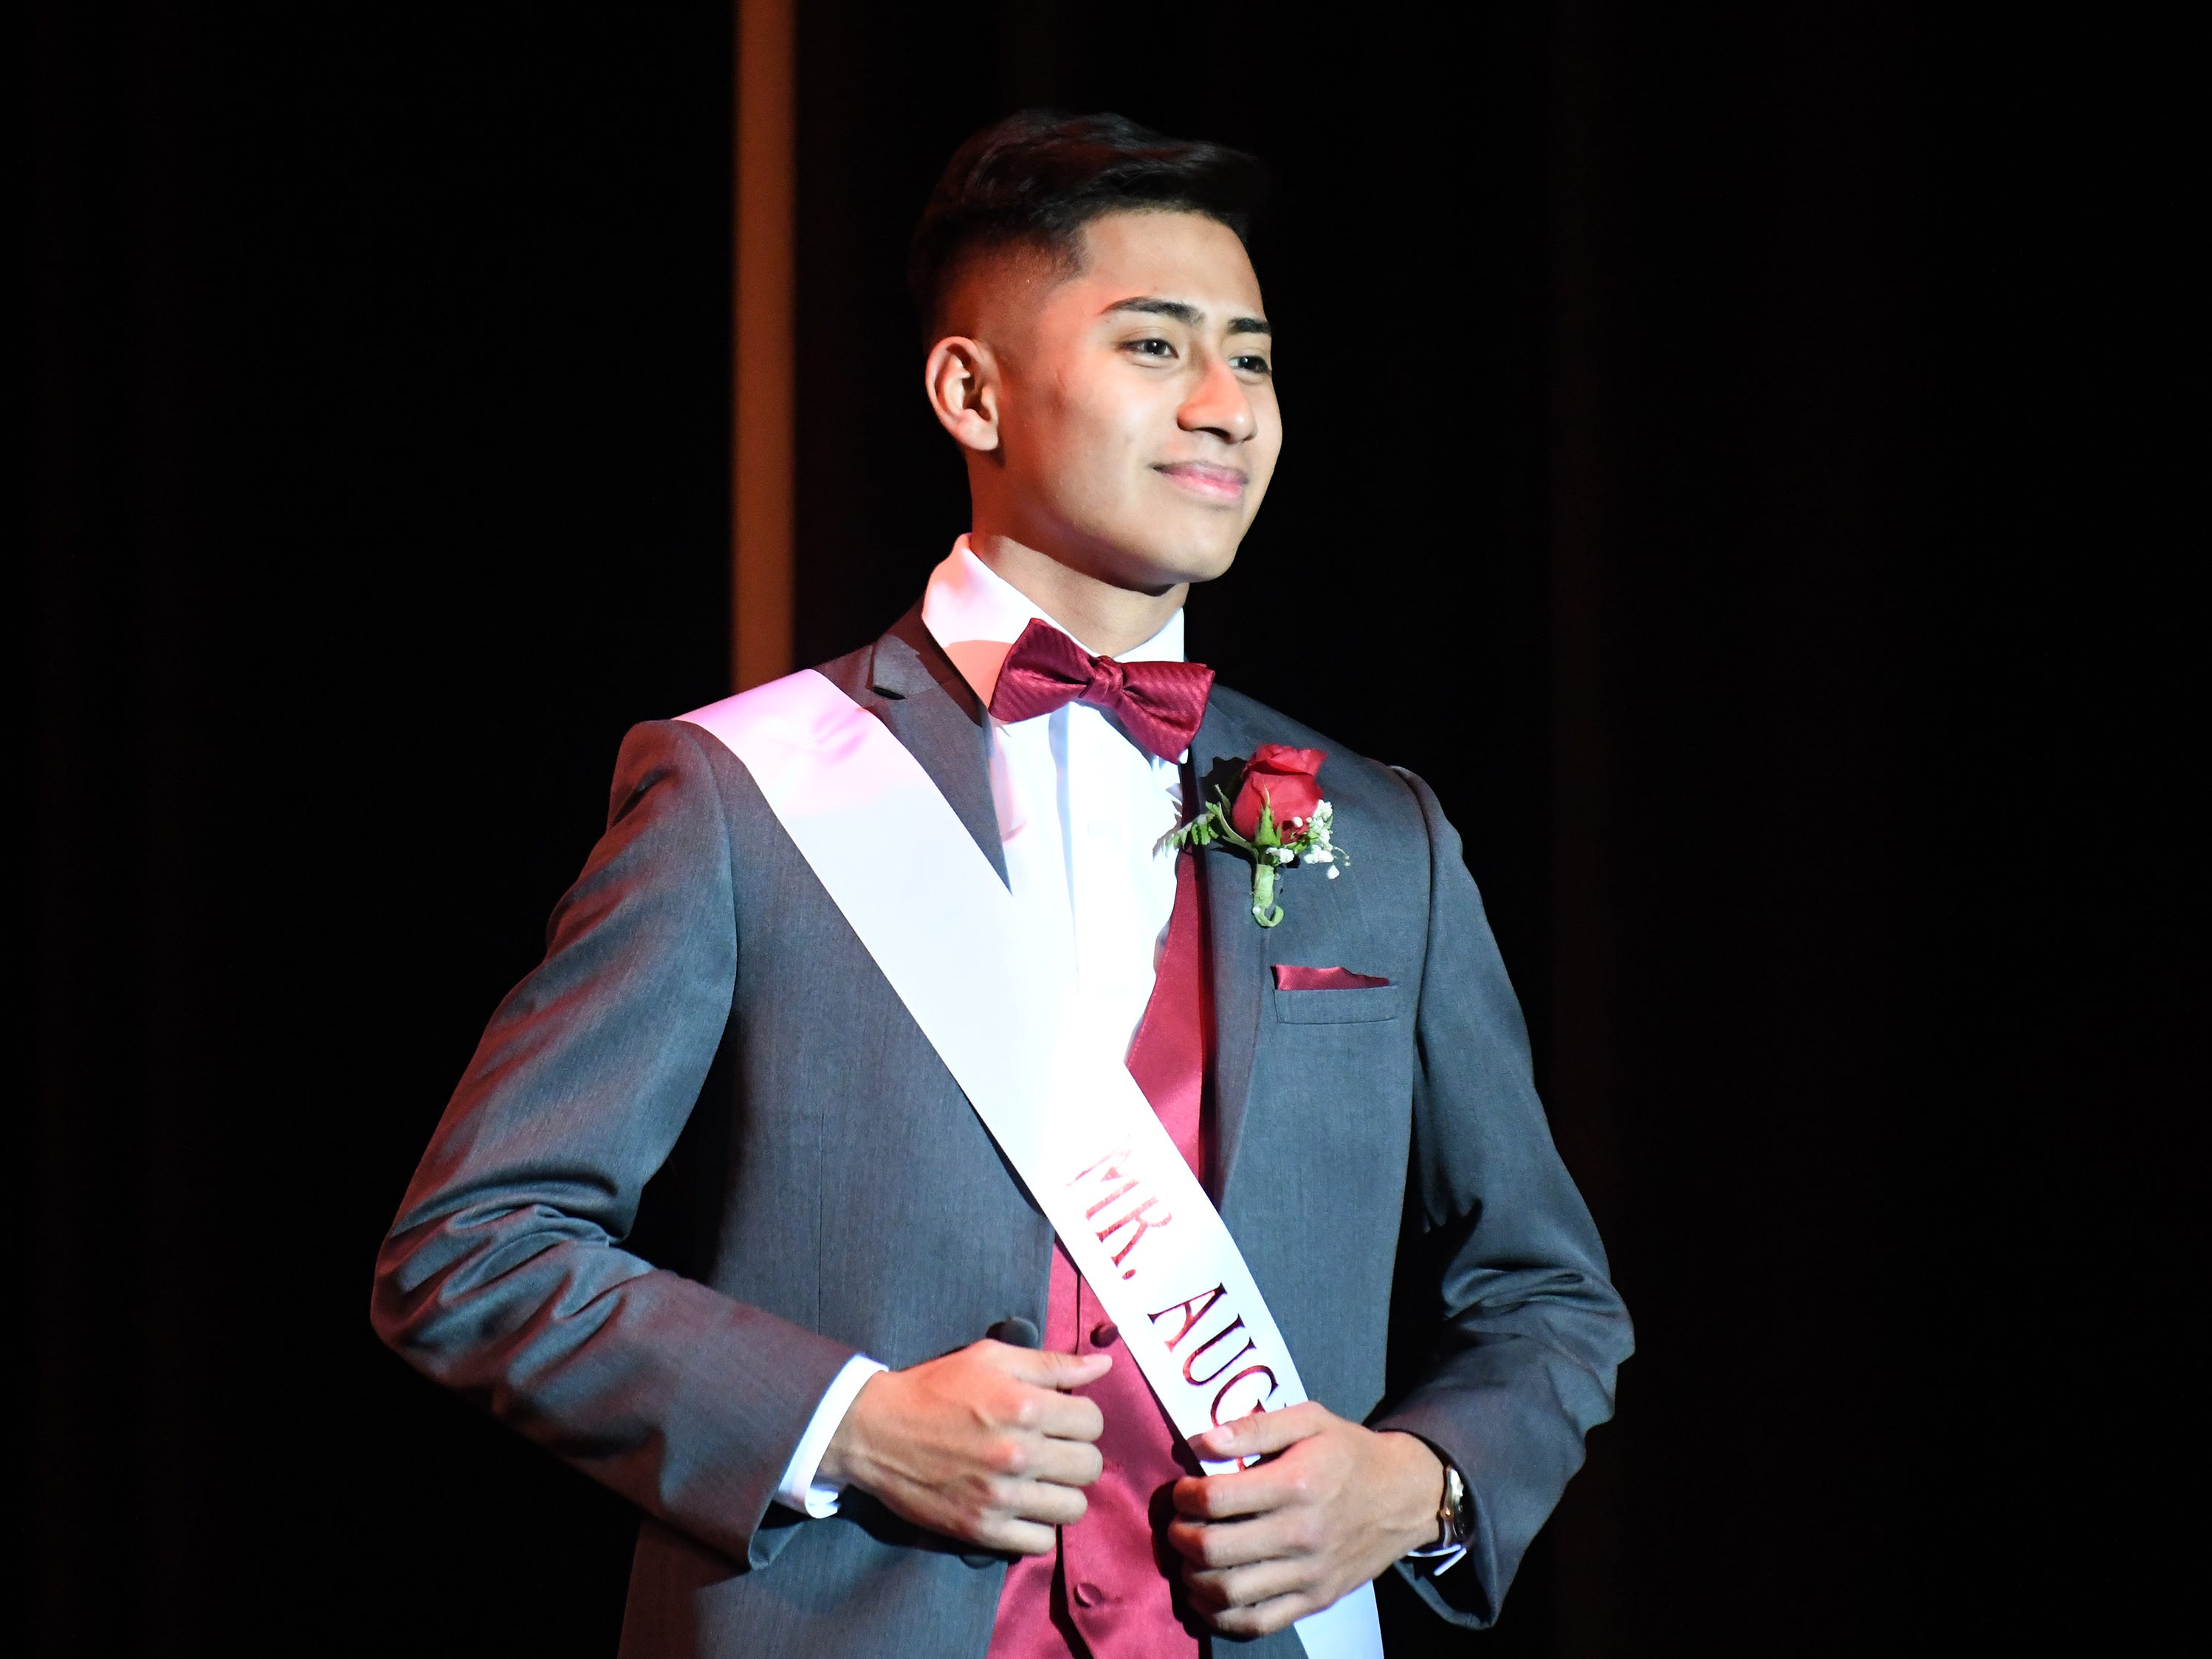 Maykon Hernandez shows off his formal wear during Mr. Vineland 2019 at Vineland High School on Thursday, January 10.